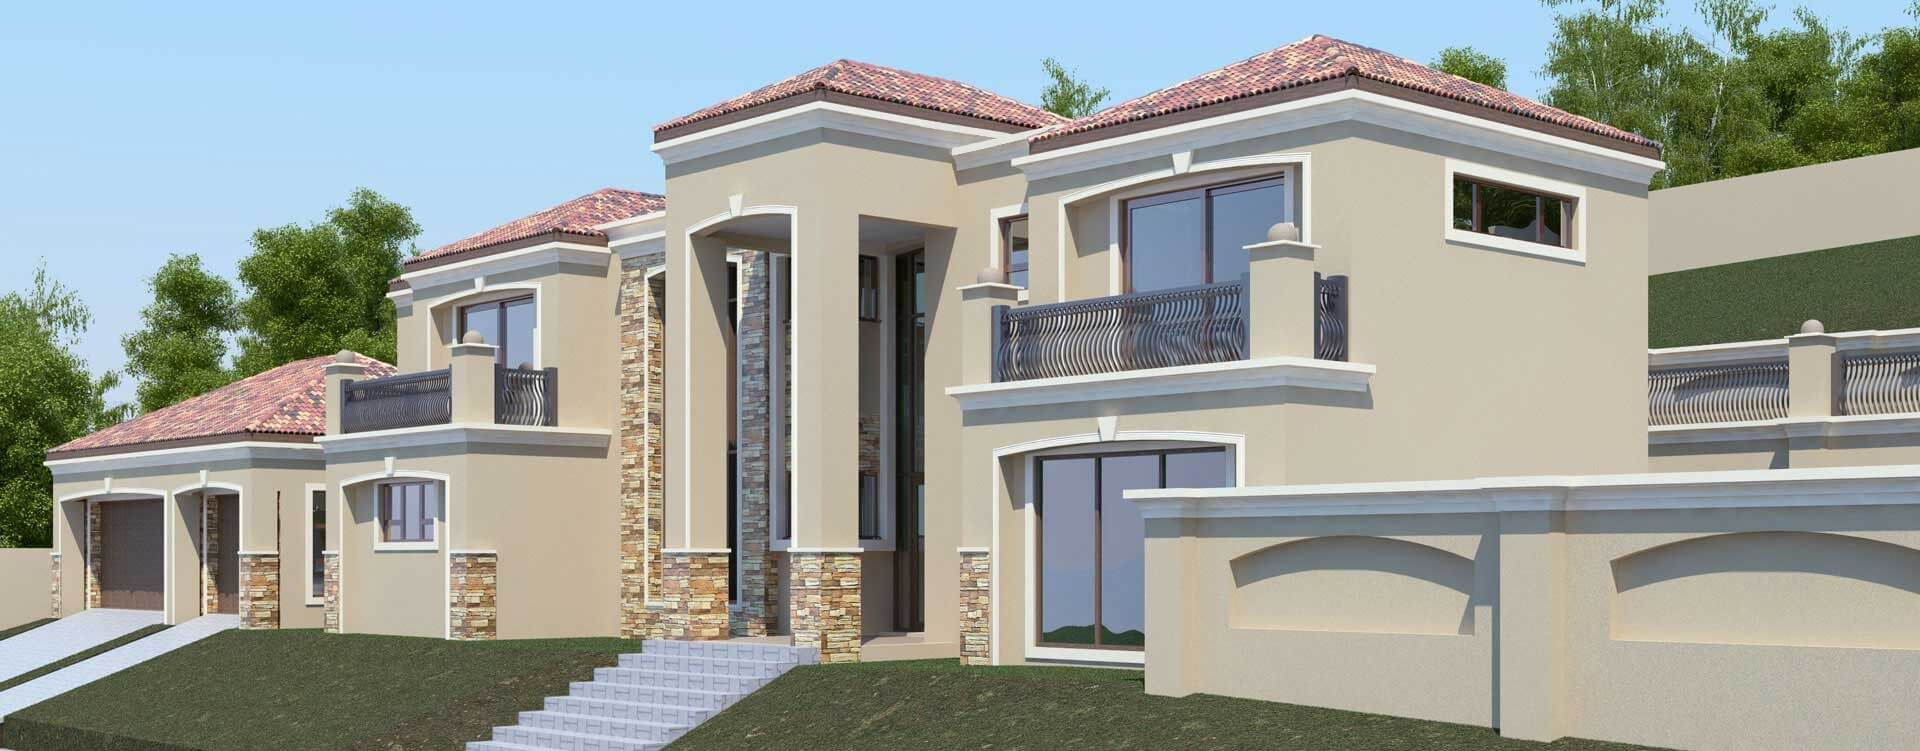 House Plan Designs great 20 home building plans on house plans bruce mactier building designers shepparton Modern Tuscan Style 5 Bedroom House Plan Double Storey Floor Plans Nethouseplans Architectural